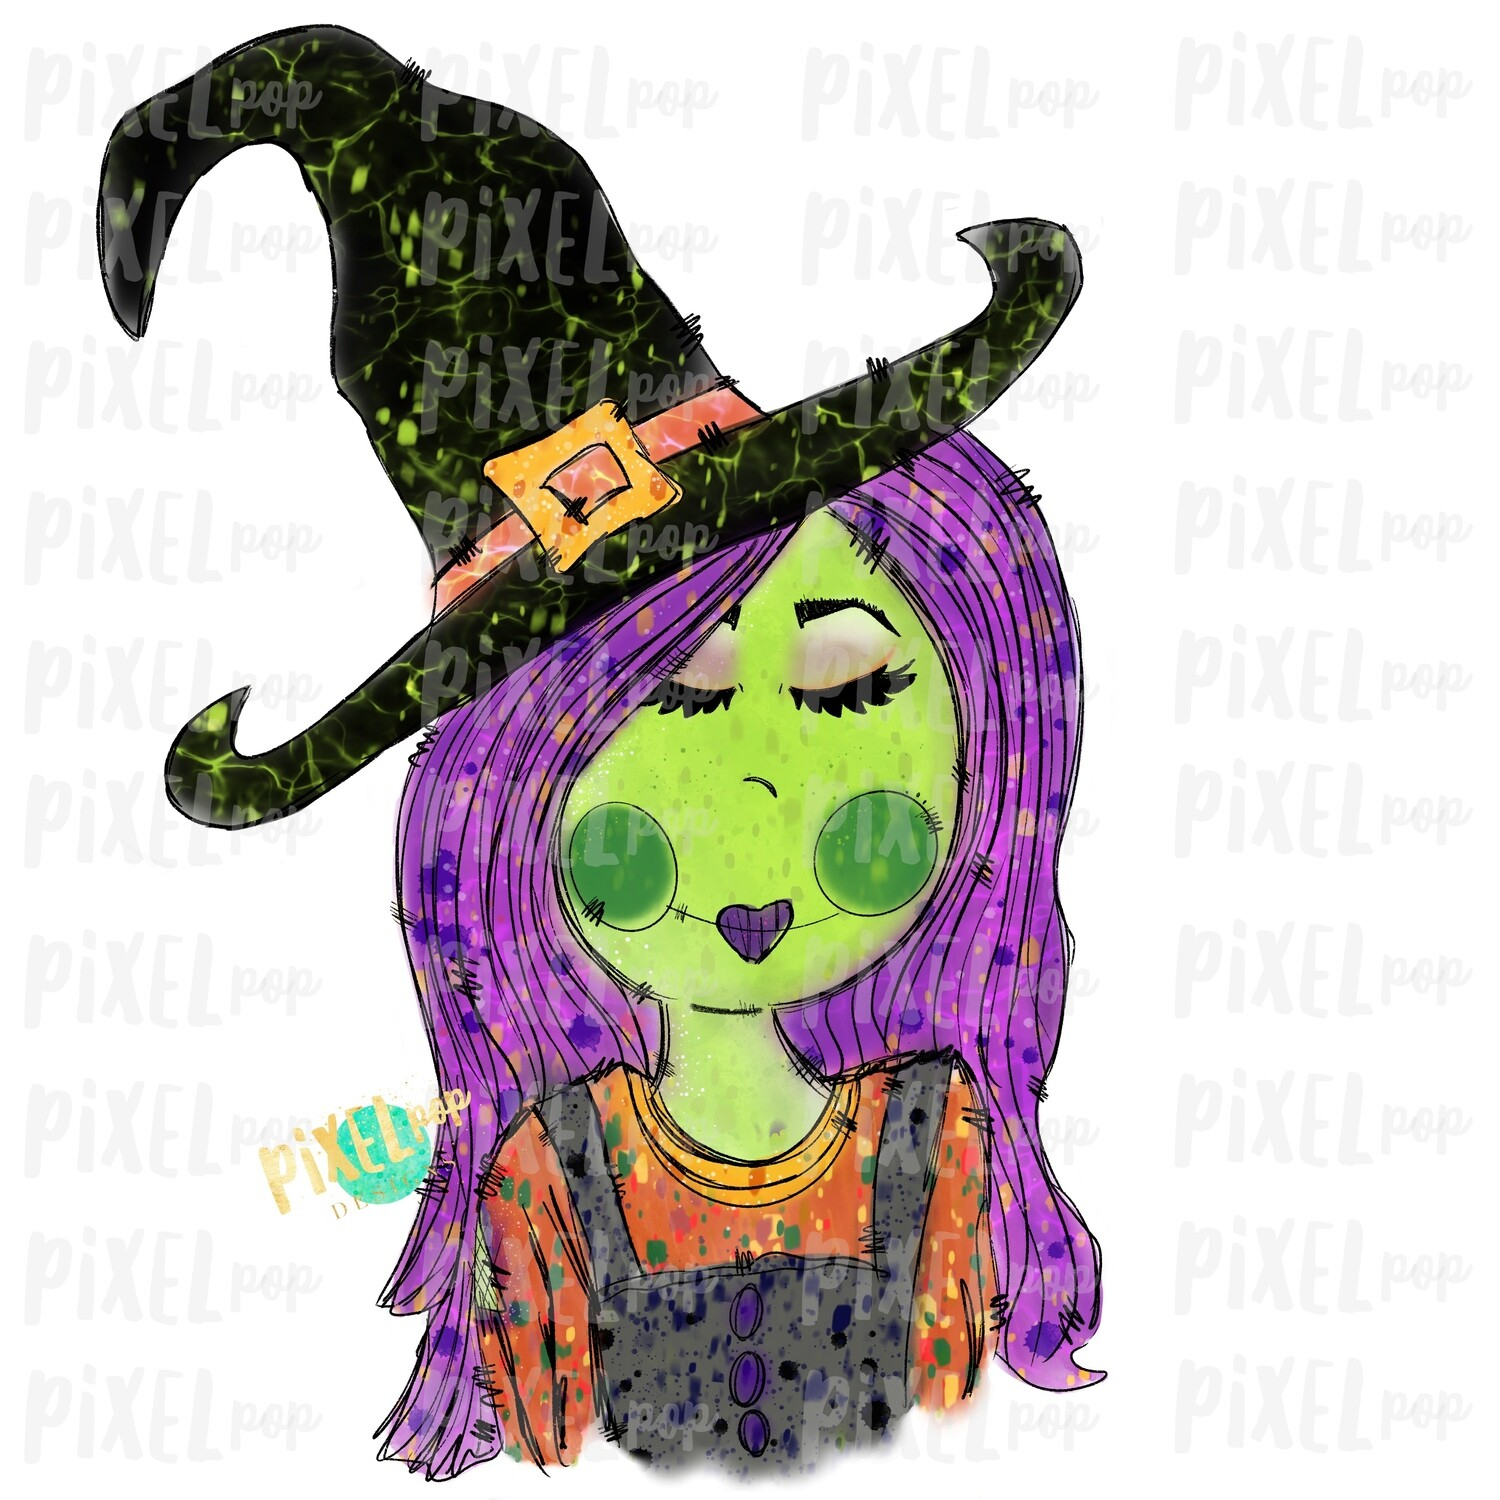 Sketchy Witch Girl Halloween Sublimation PNG | Hand Drawn Painted Design | Sublimation PNG | Digital Download | Printable Artwork | Art